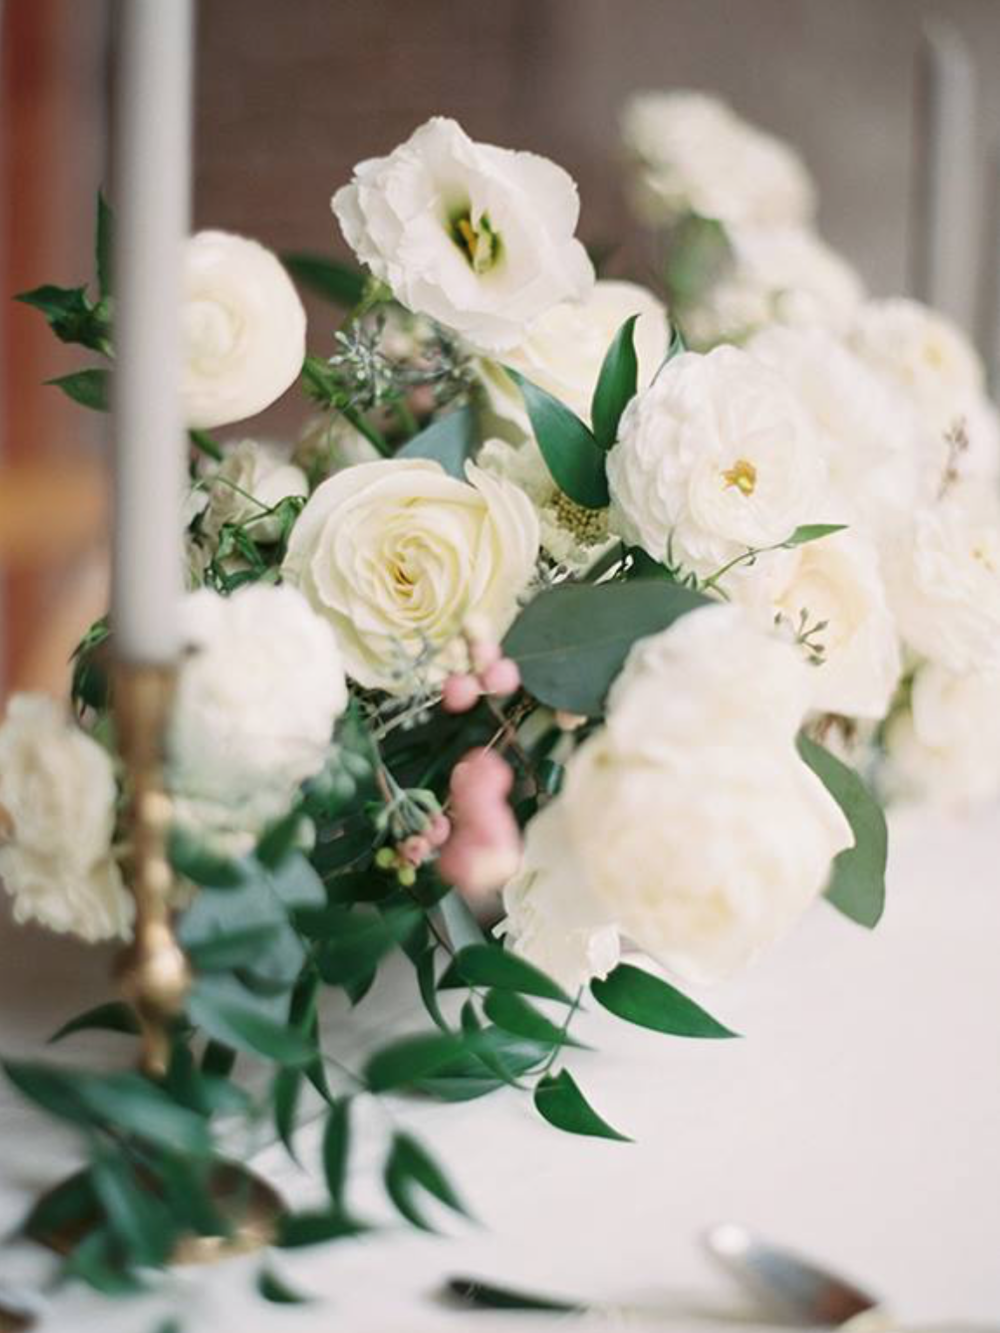 White florals with touches of greenery mixed with brass candlesticks are the perfect table decor for Spring.